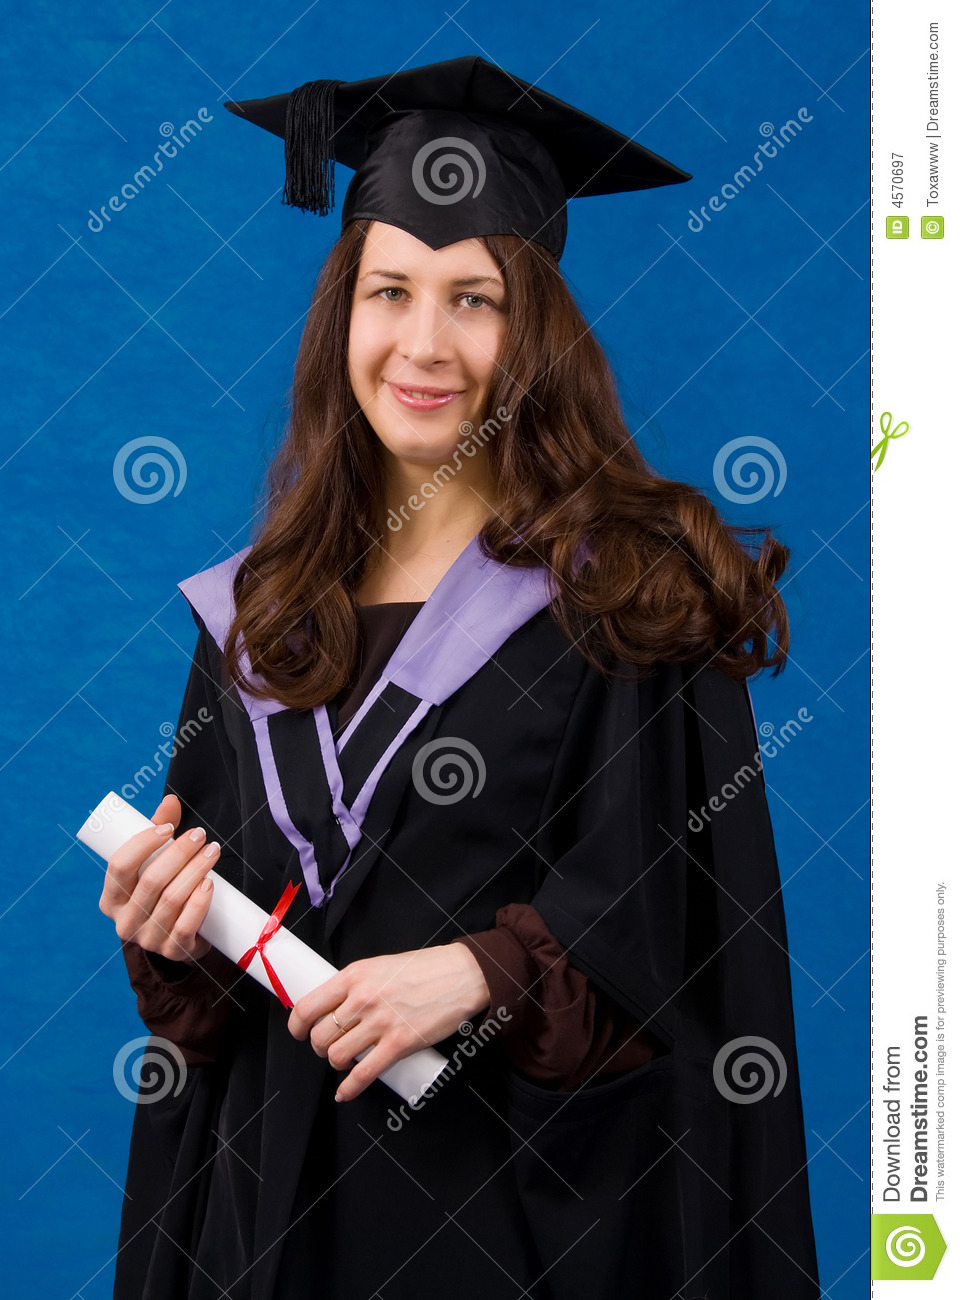 Degree holder